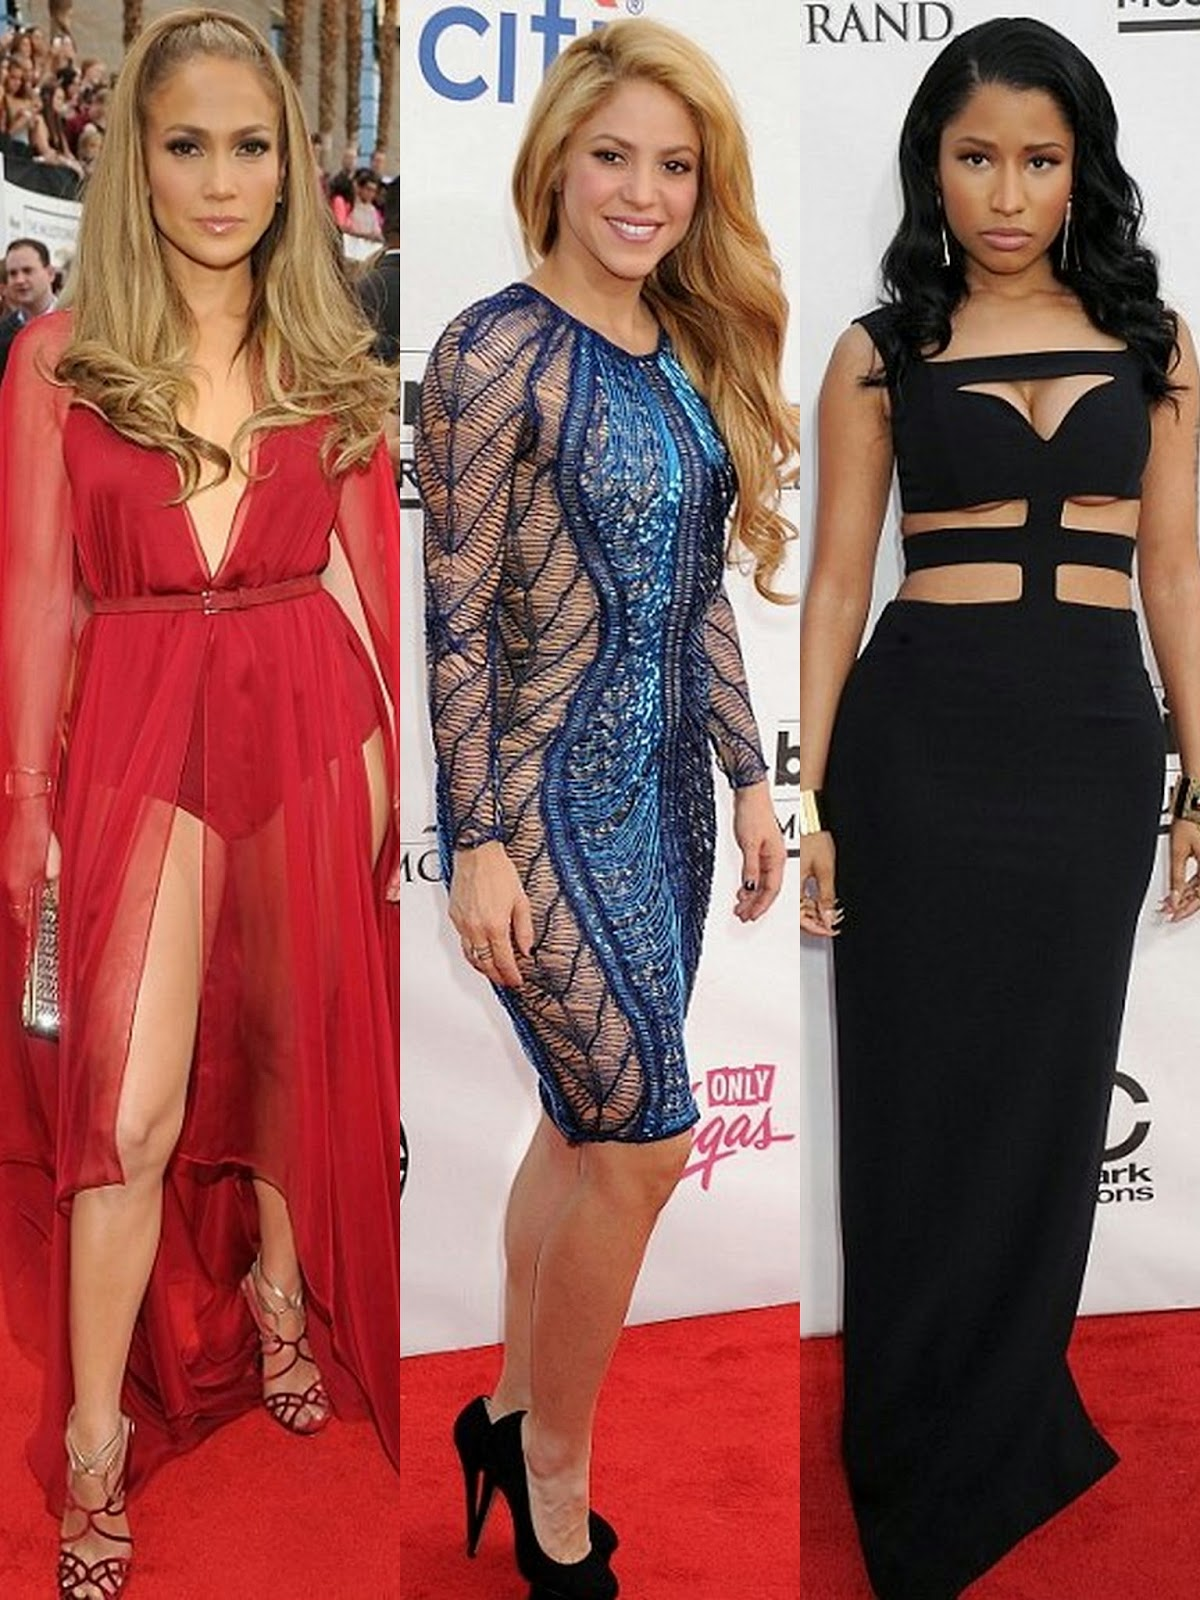 hot celebrities: Jennifer Lopez, Shakira and Nicki Minaj at the Billboard Music Awards